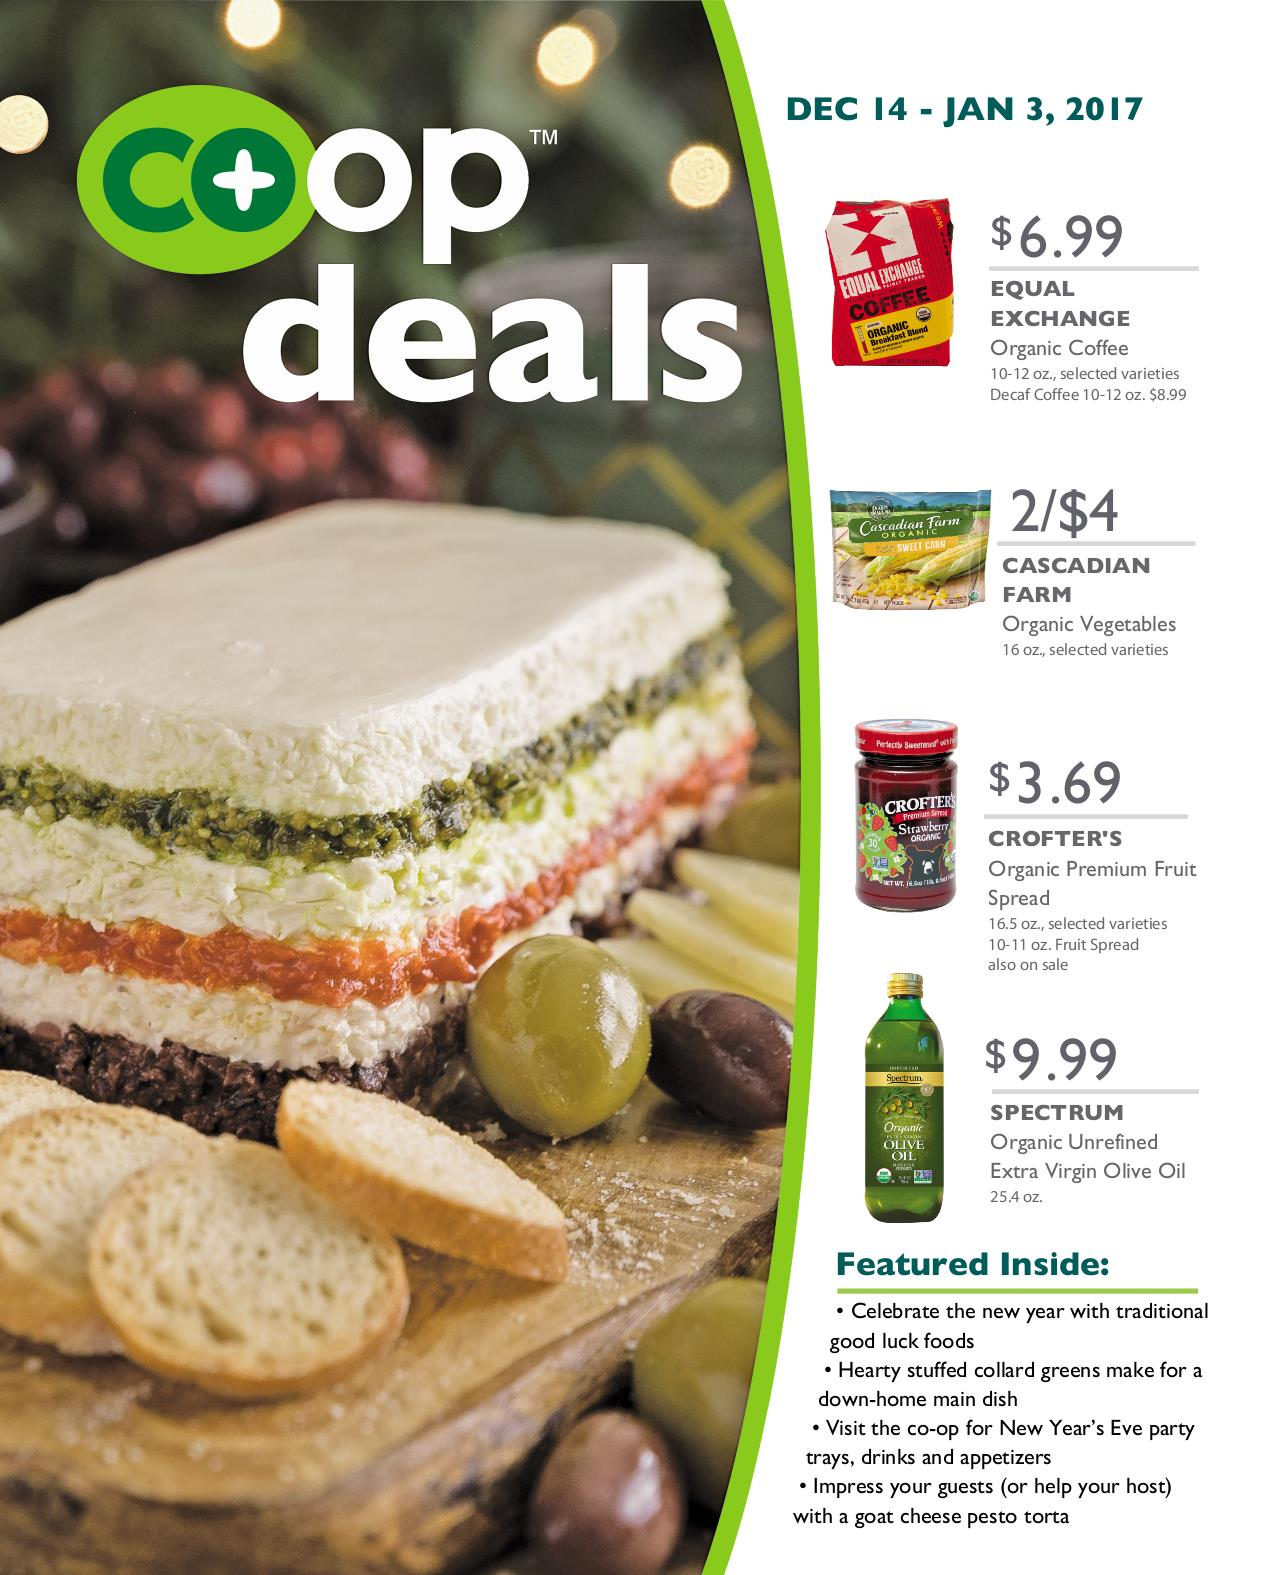 Co+op Deals December 2016 - Flyer B